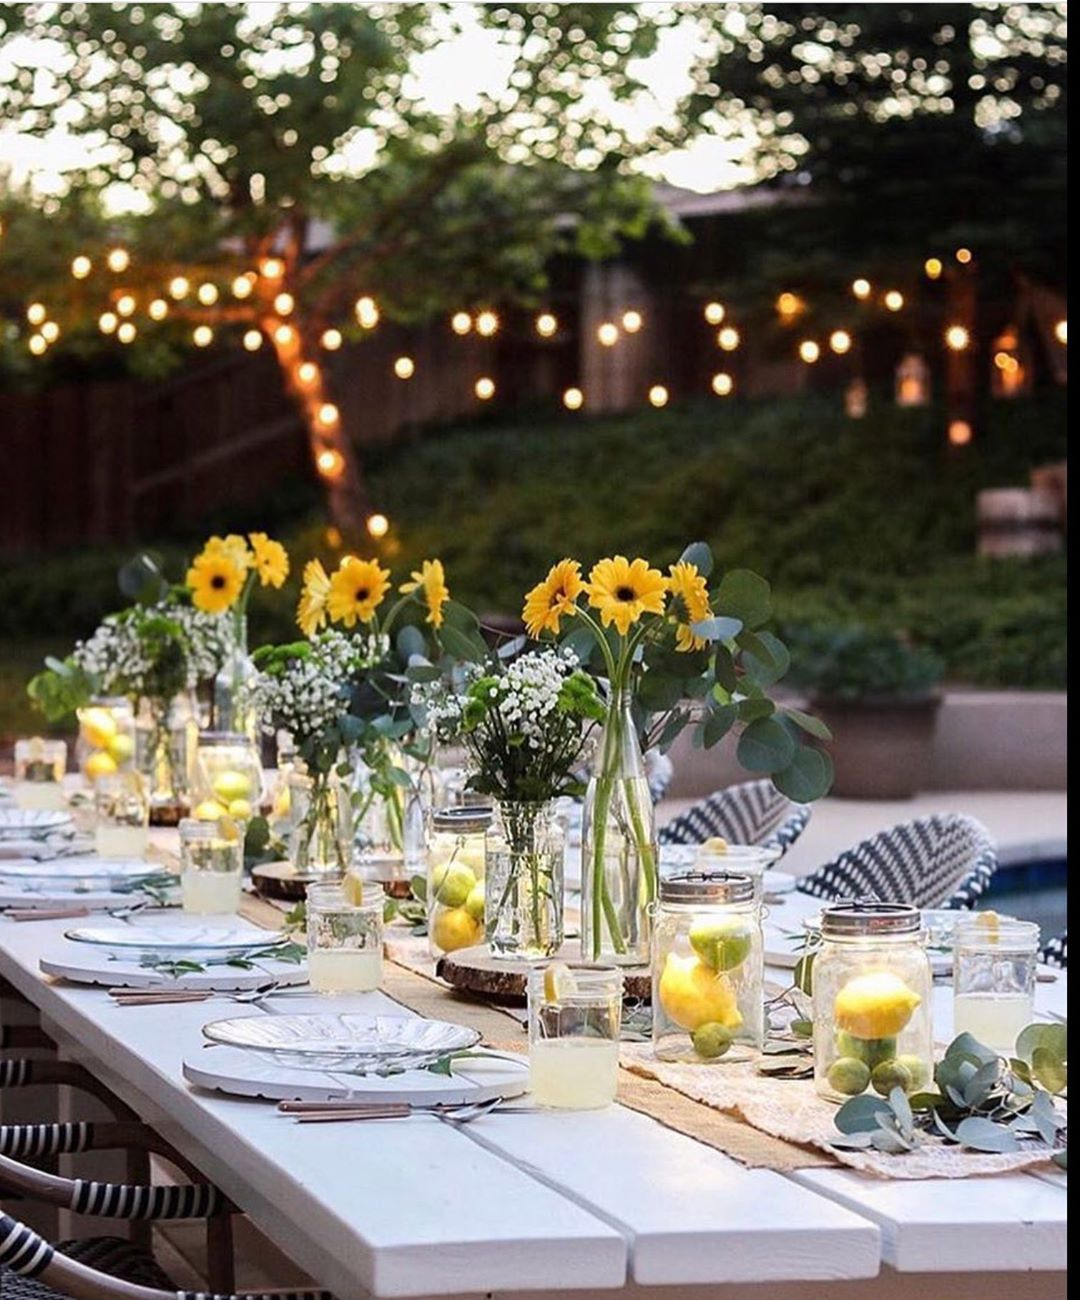 Love Love Tables Set Without Tablecloths Simple And Elegant Summe Backyard Dinner Party Dinner Party Ideas For Adults Birthday Party Decorations For Adults